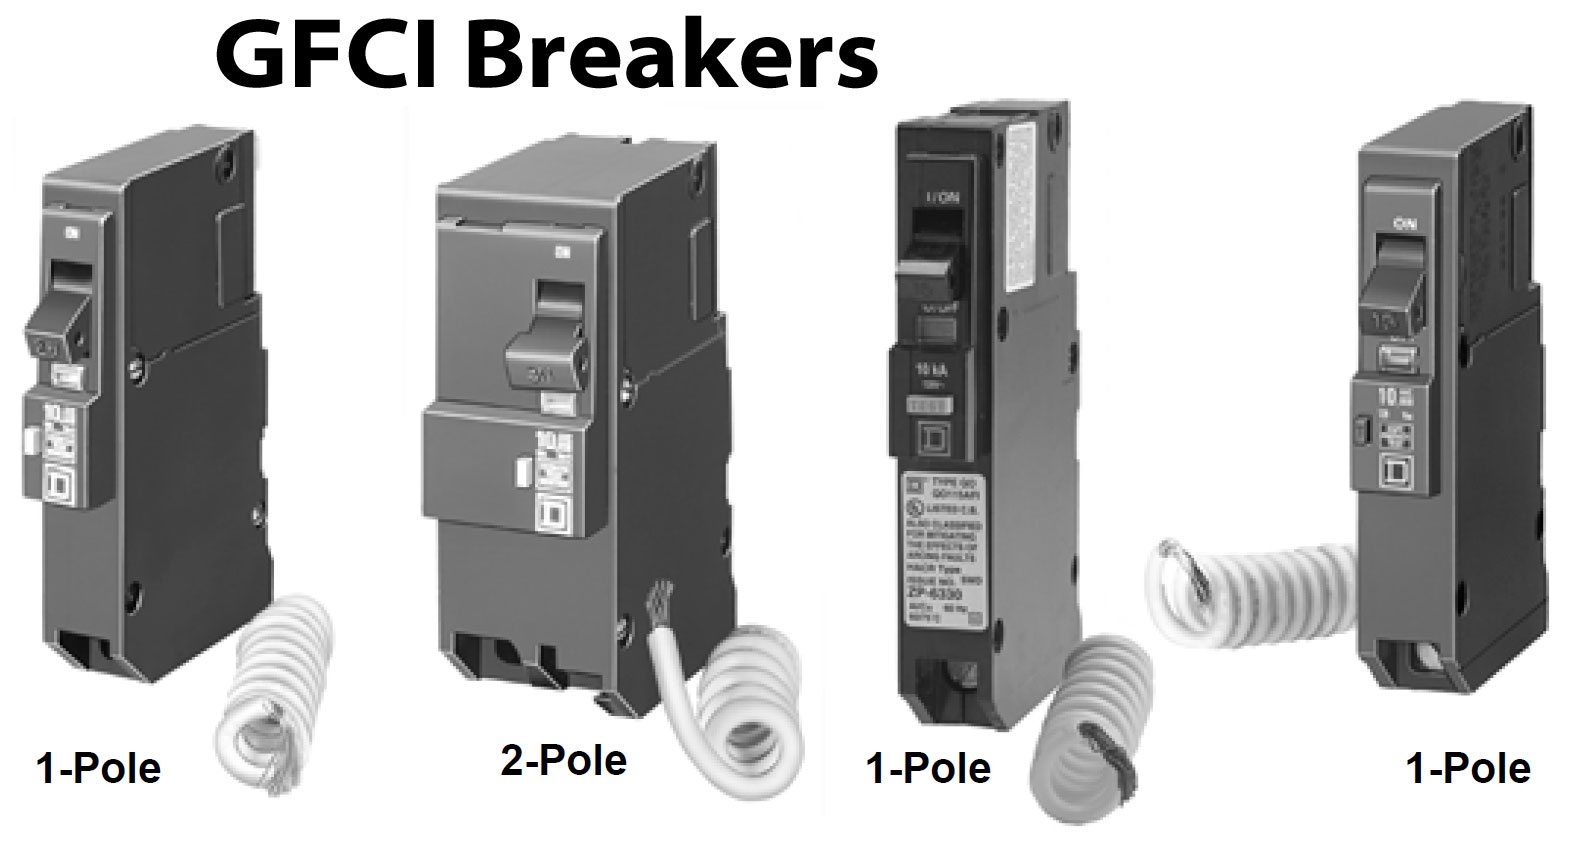 Wiring Diagram For A Gfci Breaker | Manual E-Books - Gfci Breaker Wiring Diagram